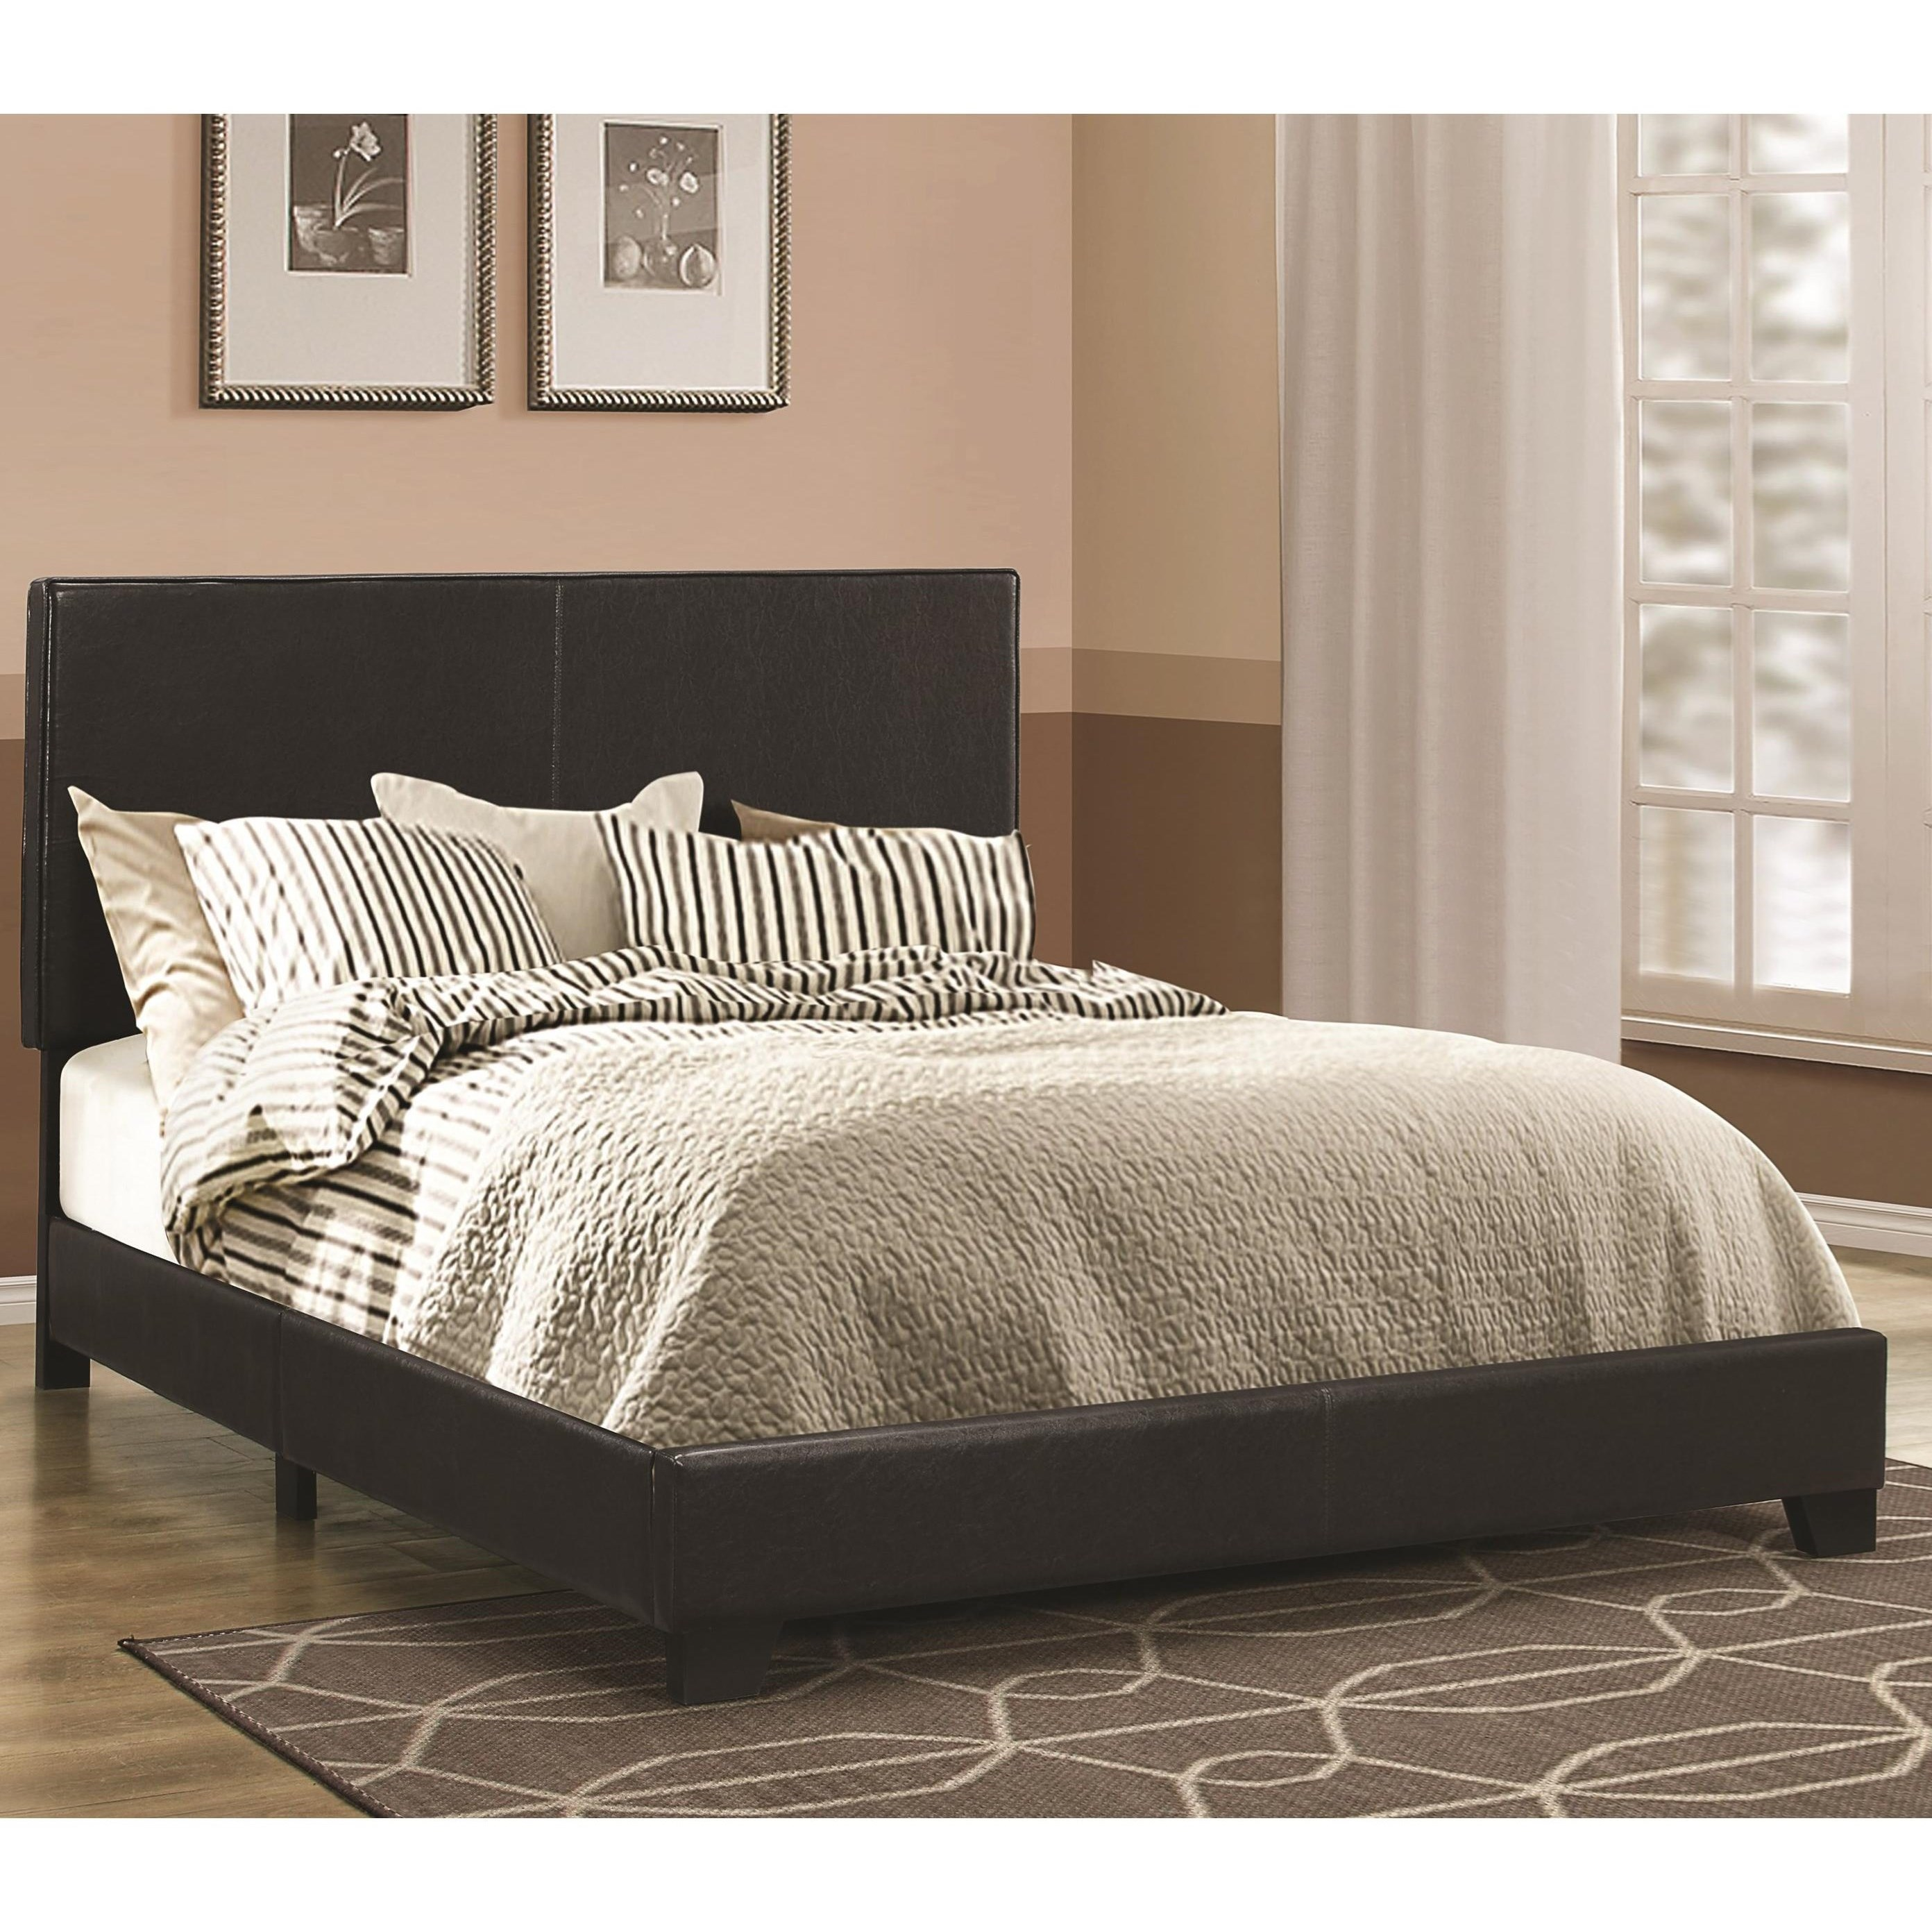 Dorian Black Full Bed by Coaster at Northeast Factory Direct